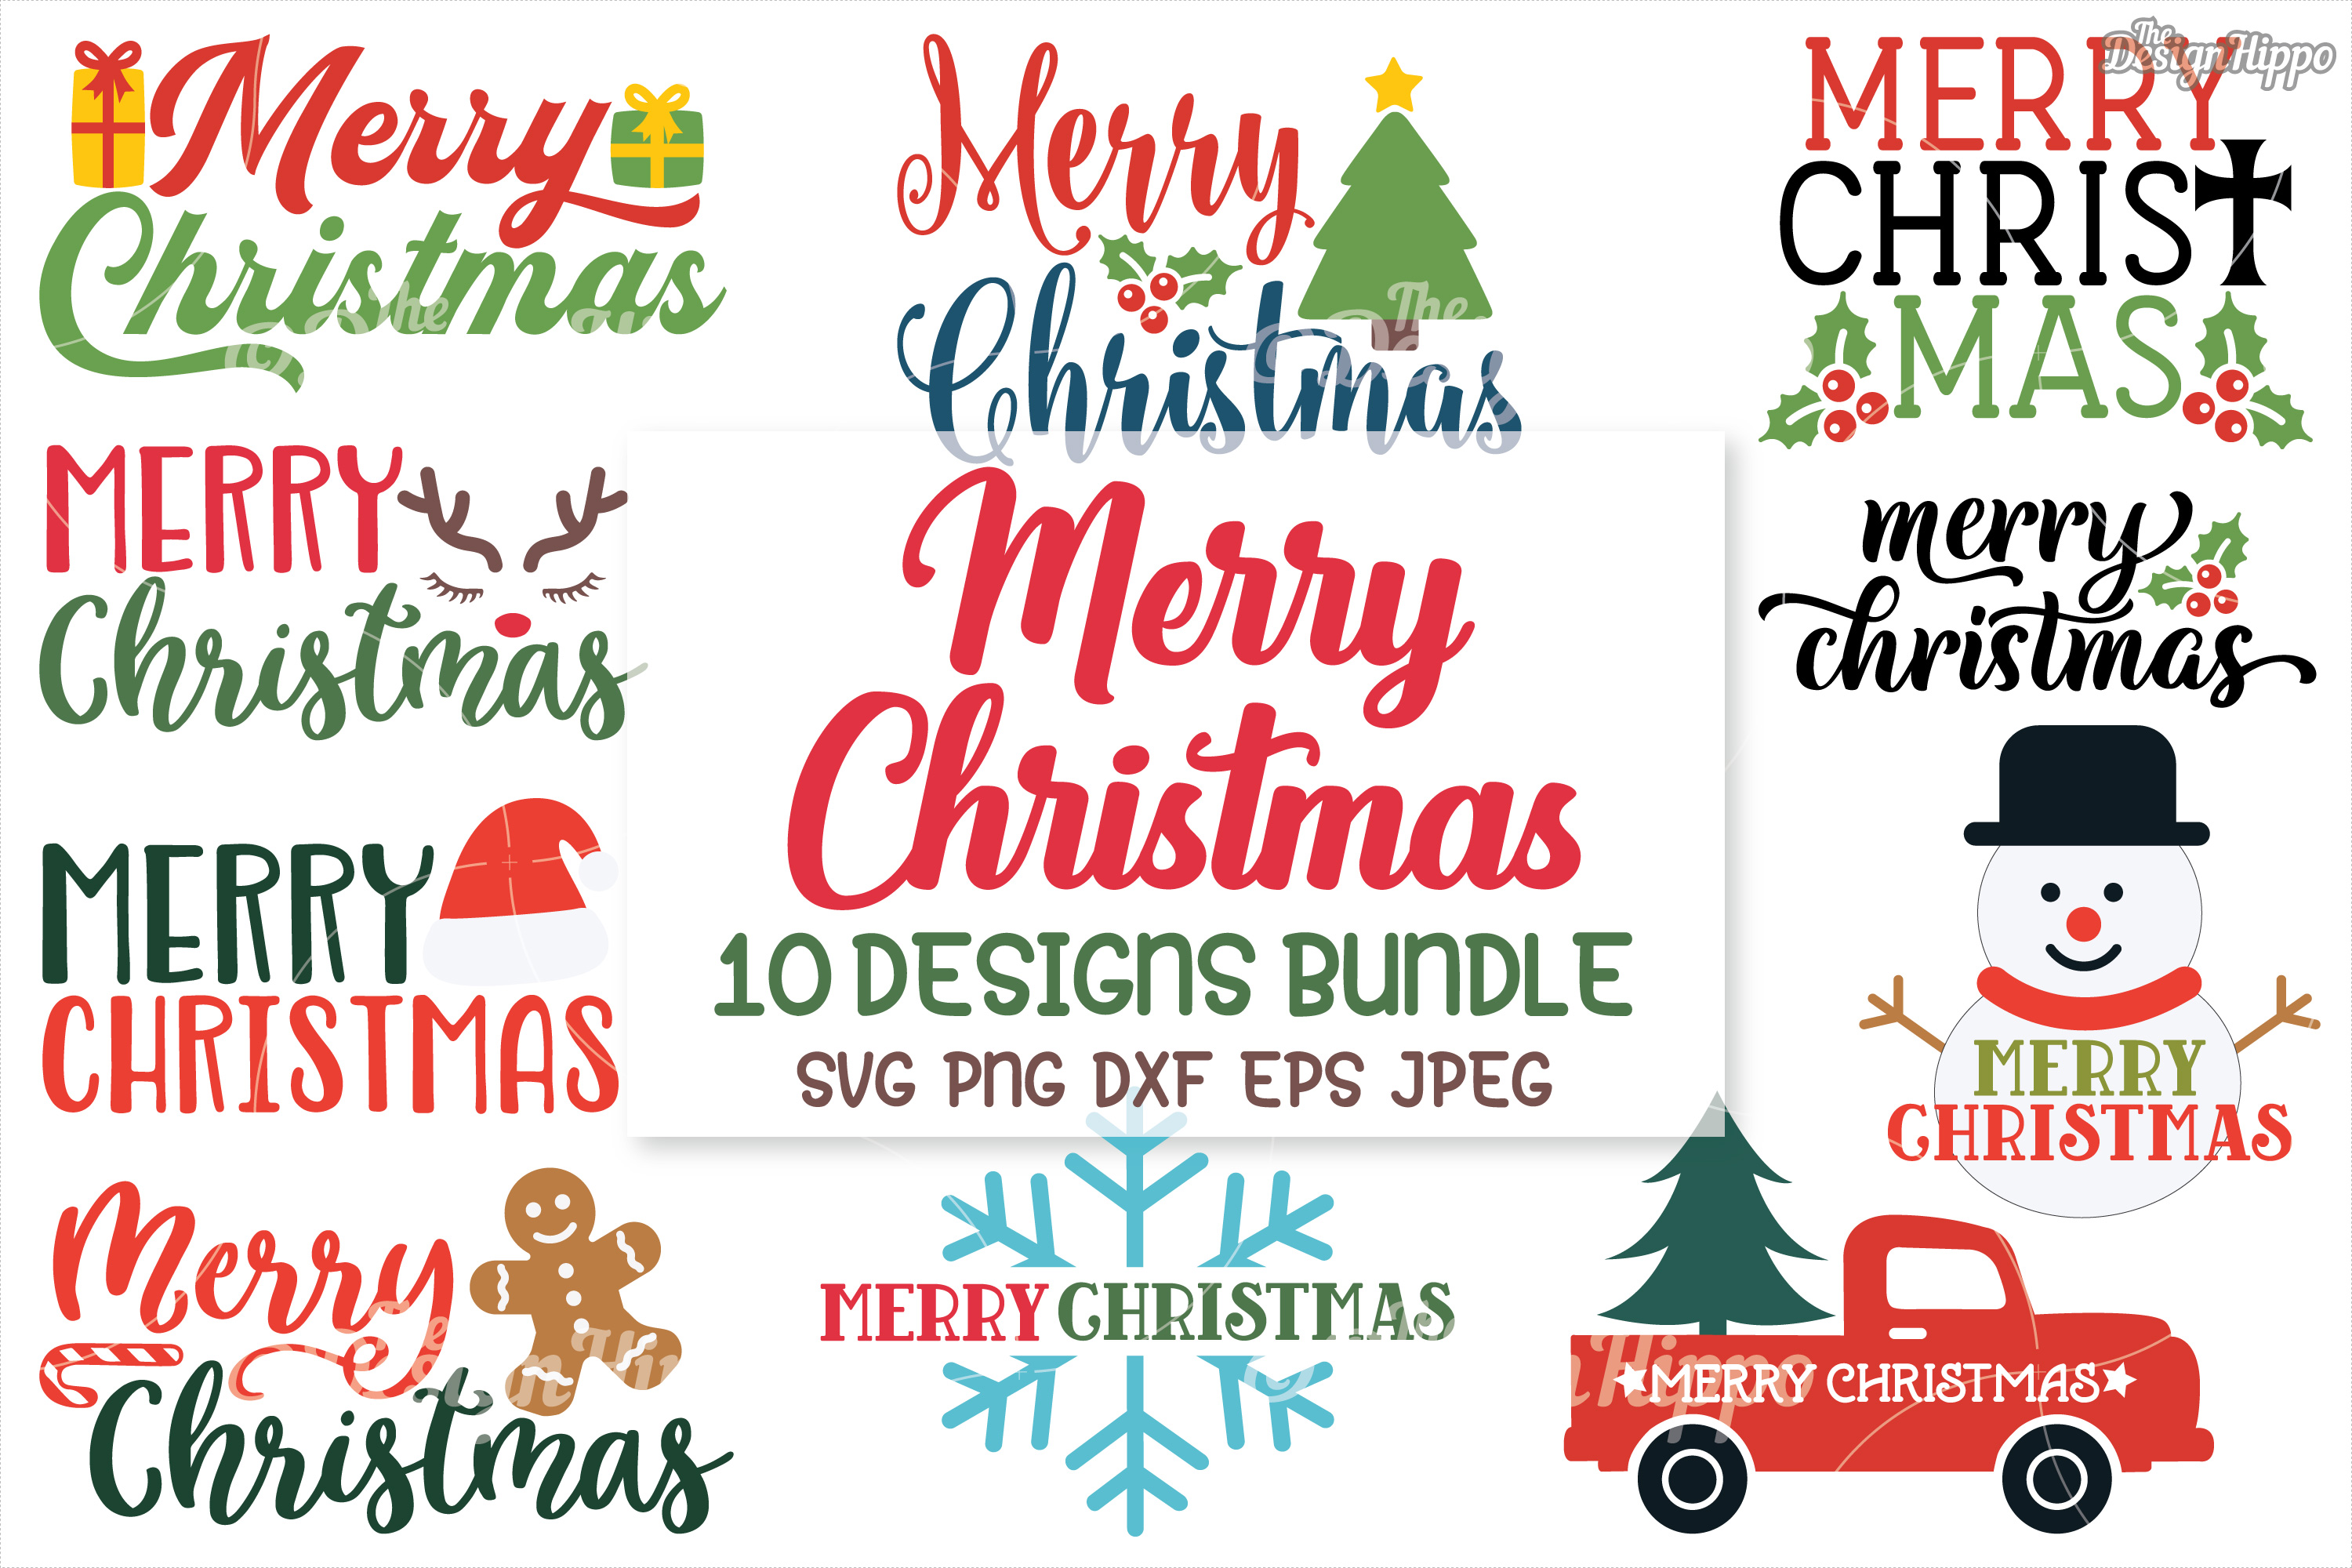 Merry Christmas SVG Bundle, Christmas SVG, PNG, DXF Cut File example image 1